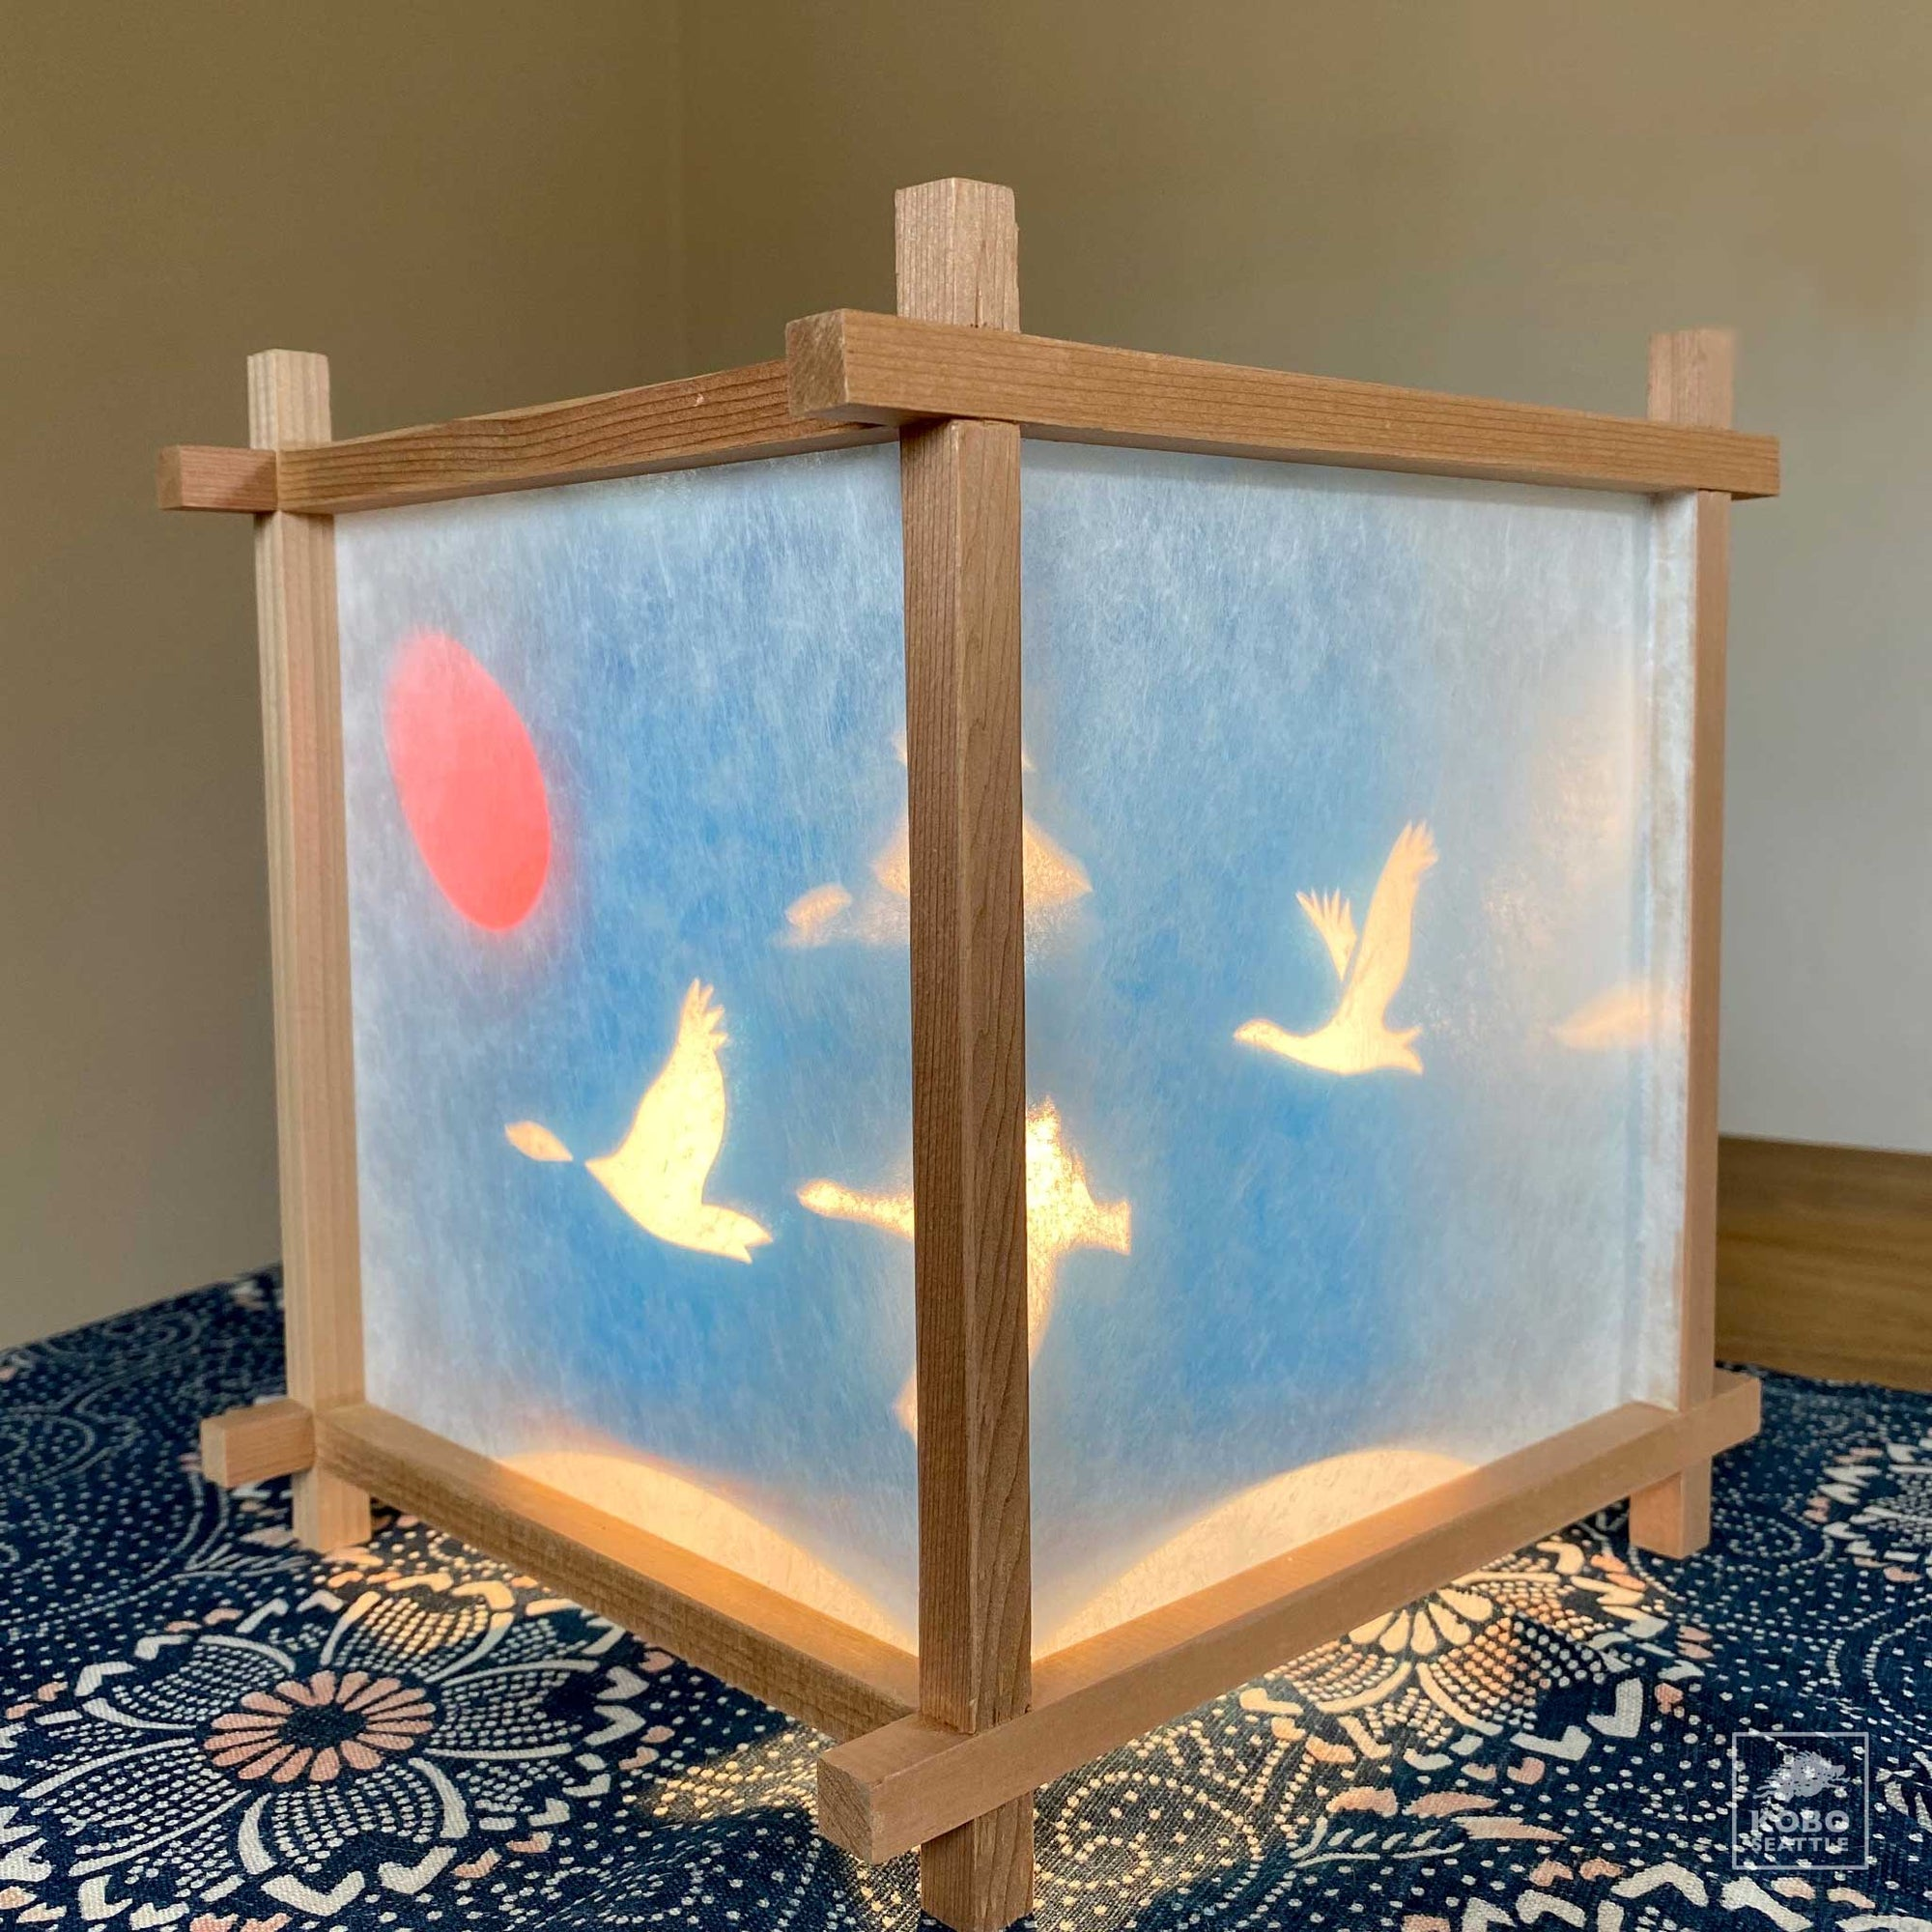 Japanese Turning Lantern - Geese Flying